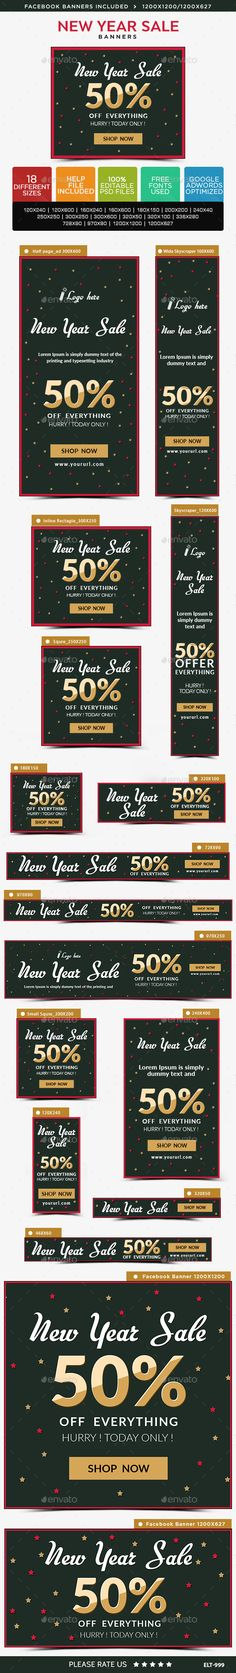 New Year Sale Web Banners Template PSD #ad #design Download: http://graphicriver.net/item/new-year-sale-banners/14206807?ref=ksioks